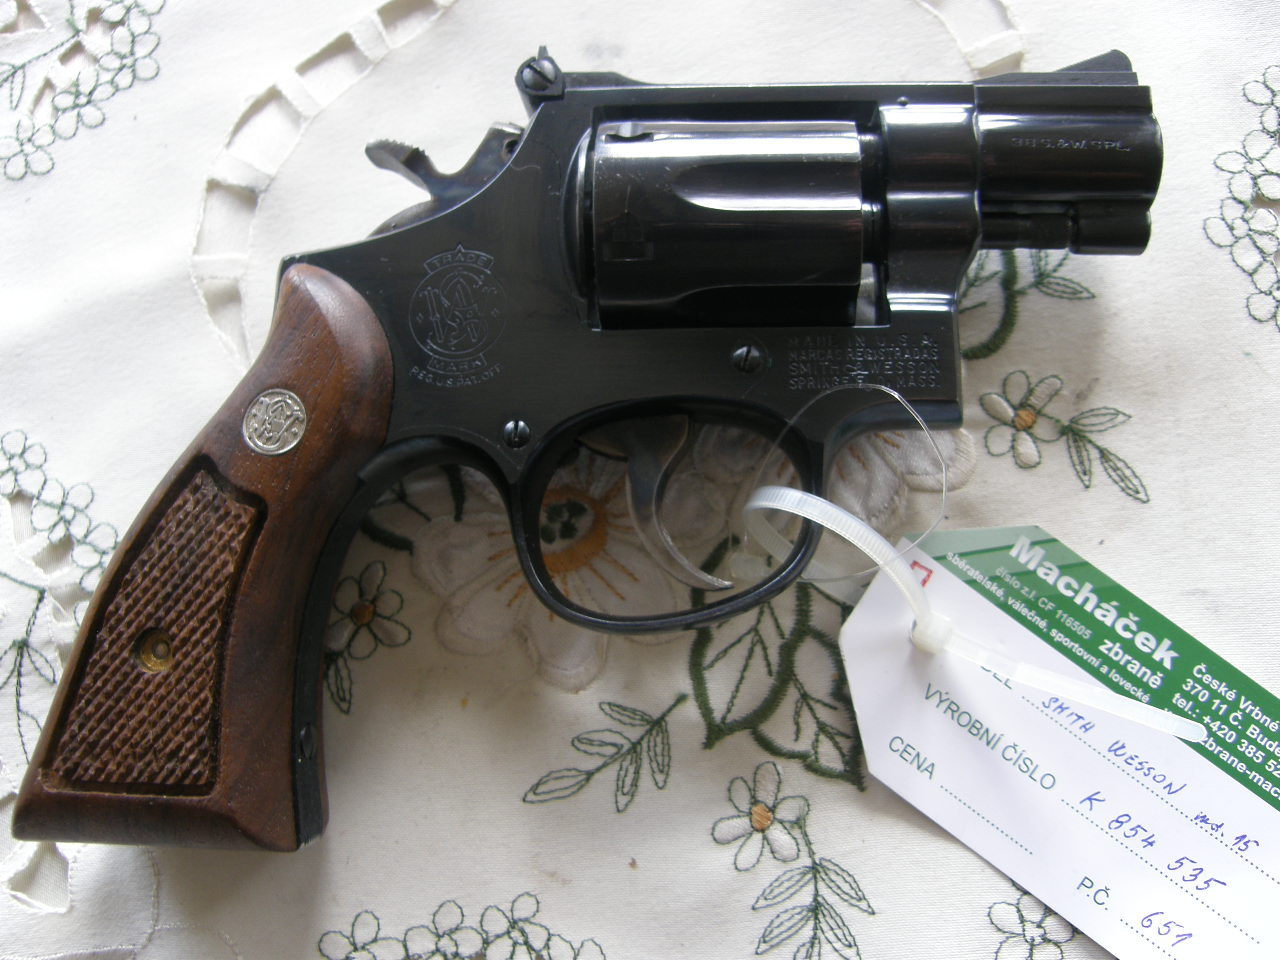 Revolver Smith wesson Mod. 15 v.č.K 854535 r. 38 SP